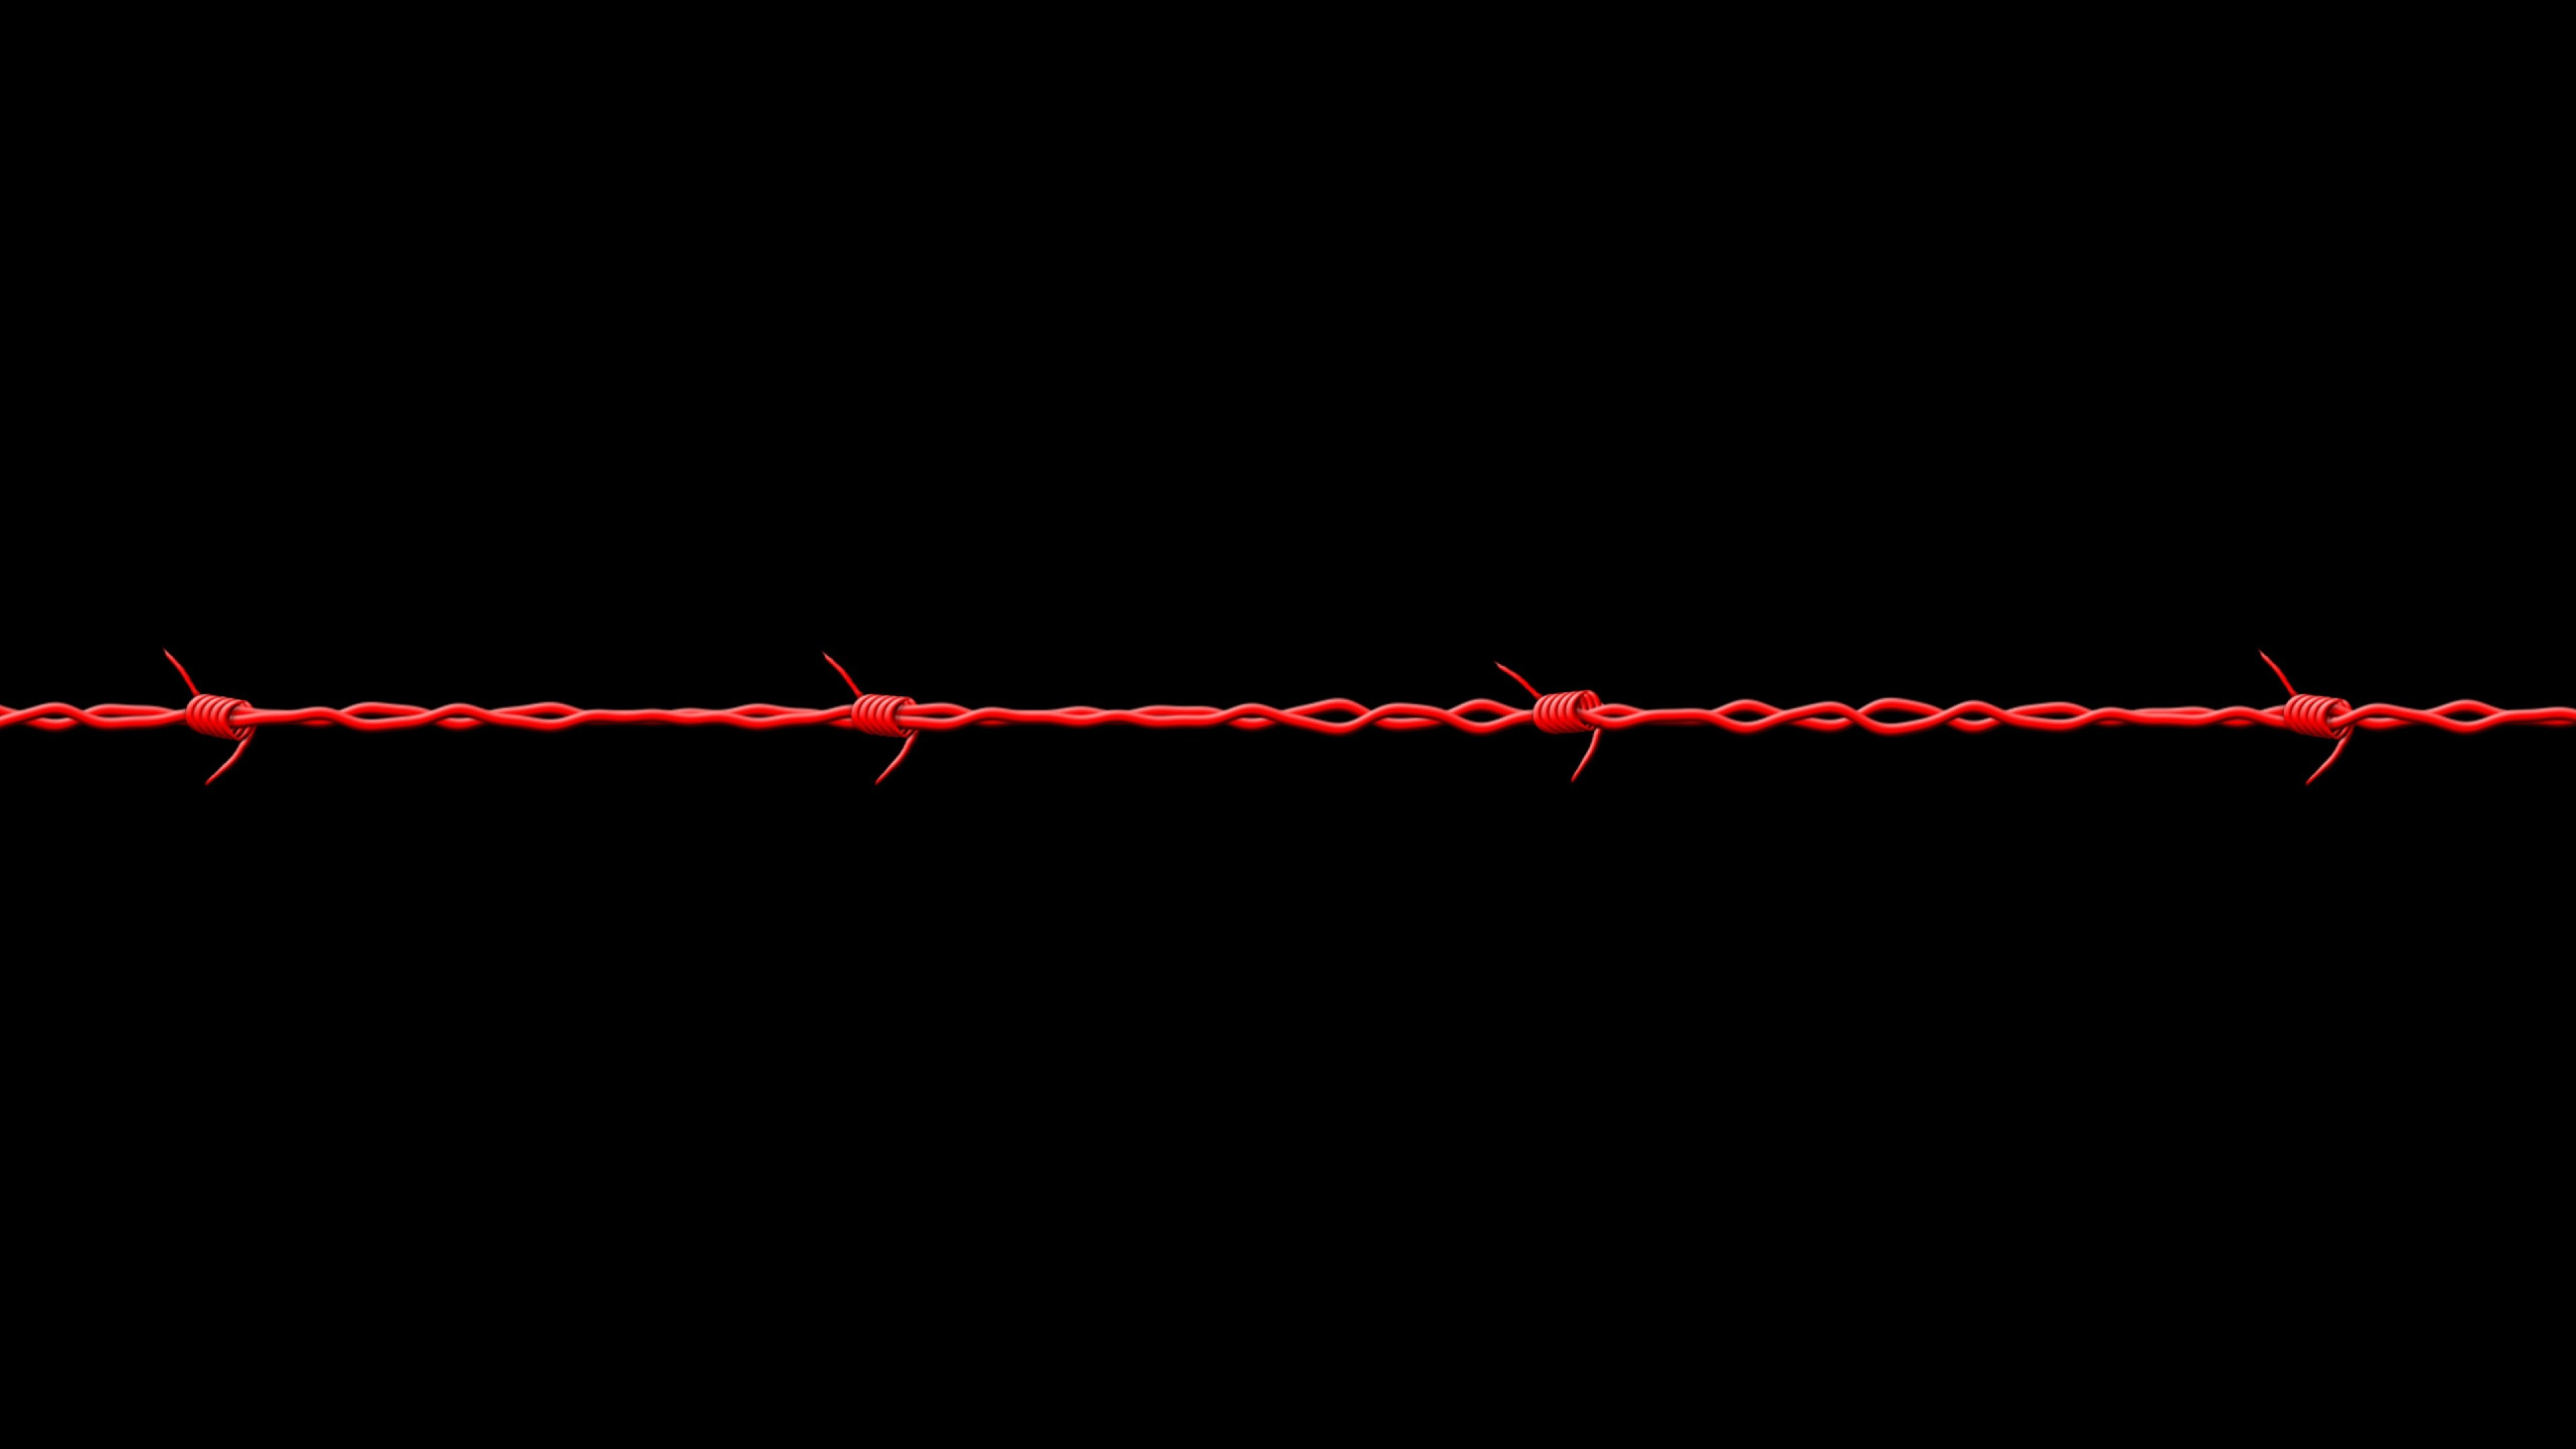 Heartbeat With Black Background 2560x1600 Download Hd Wallpaper Wallpapertip